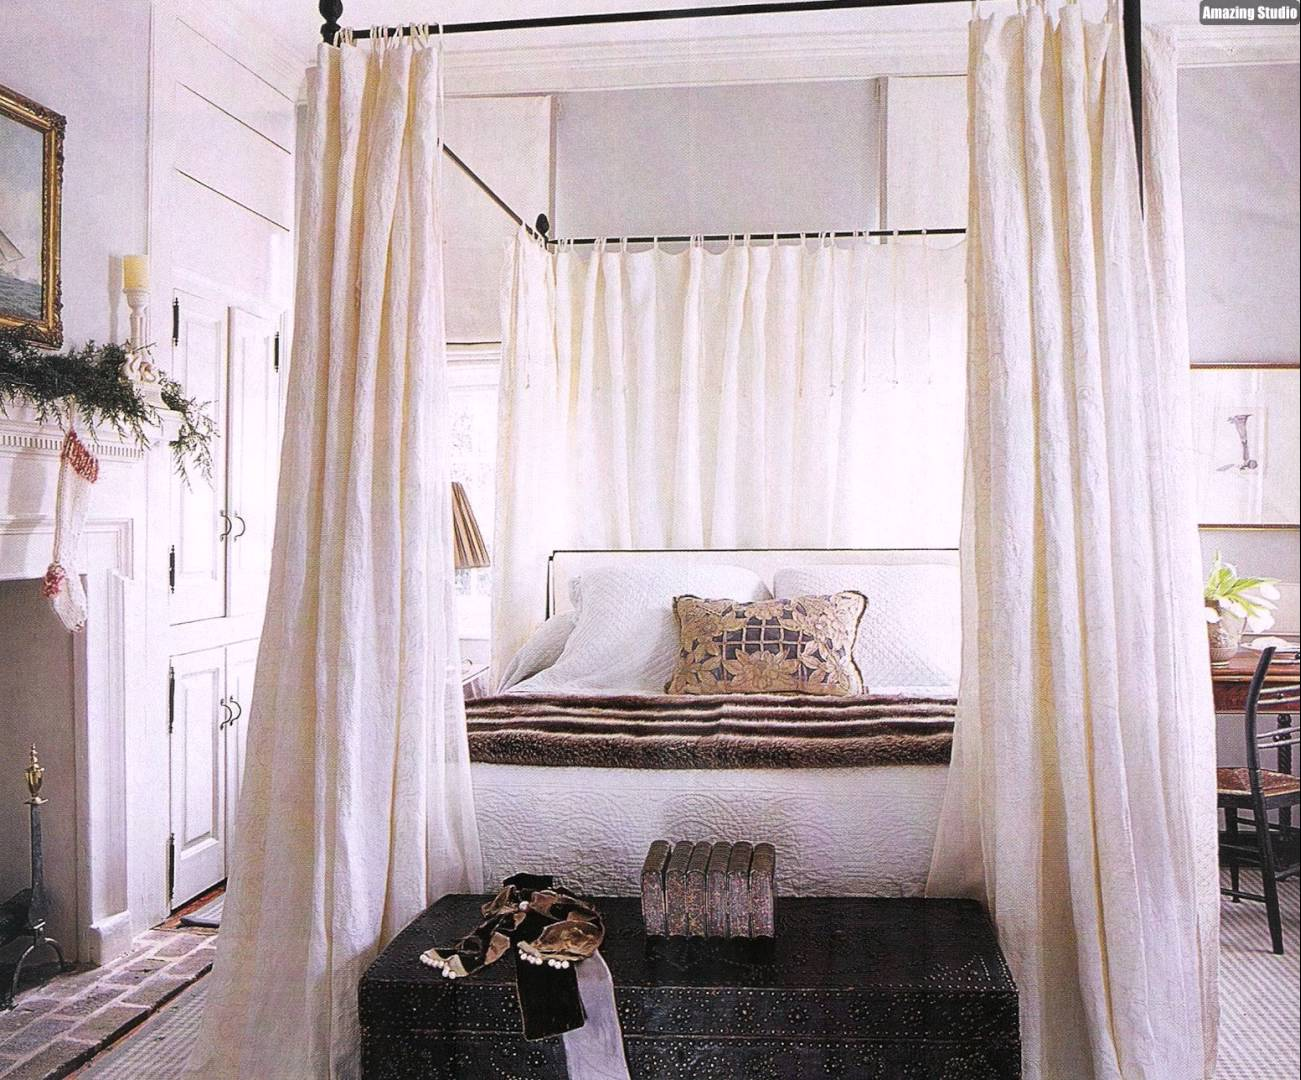 diy canopy bed from pvc pipes - midcityeast